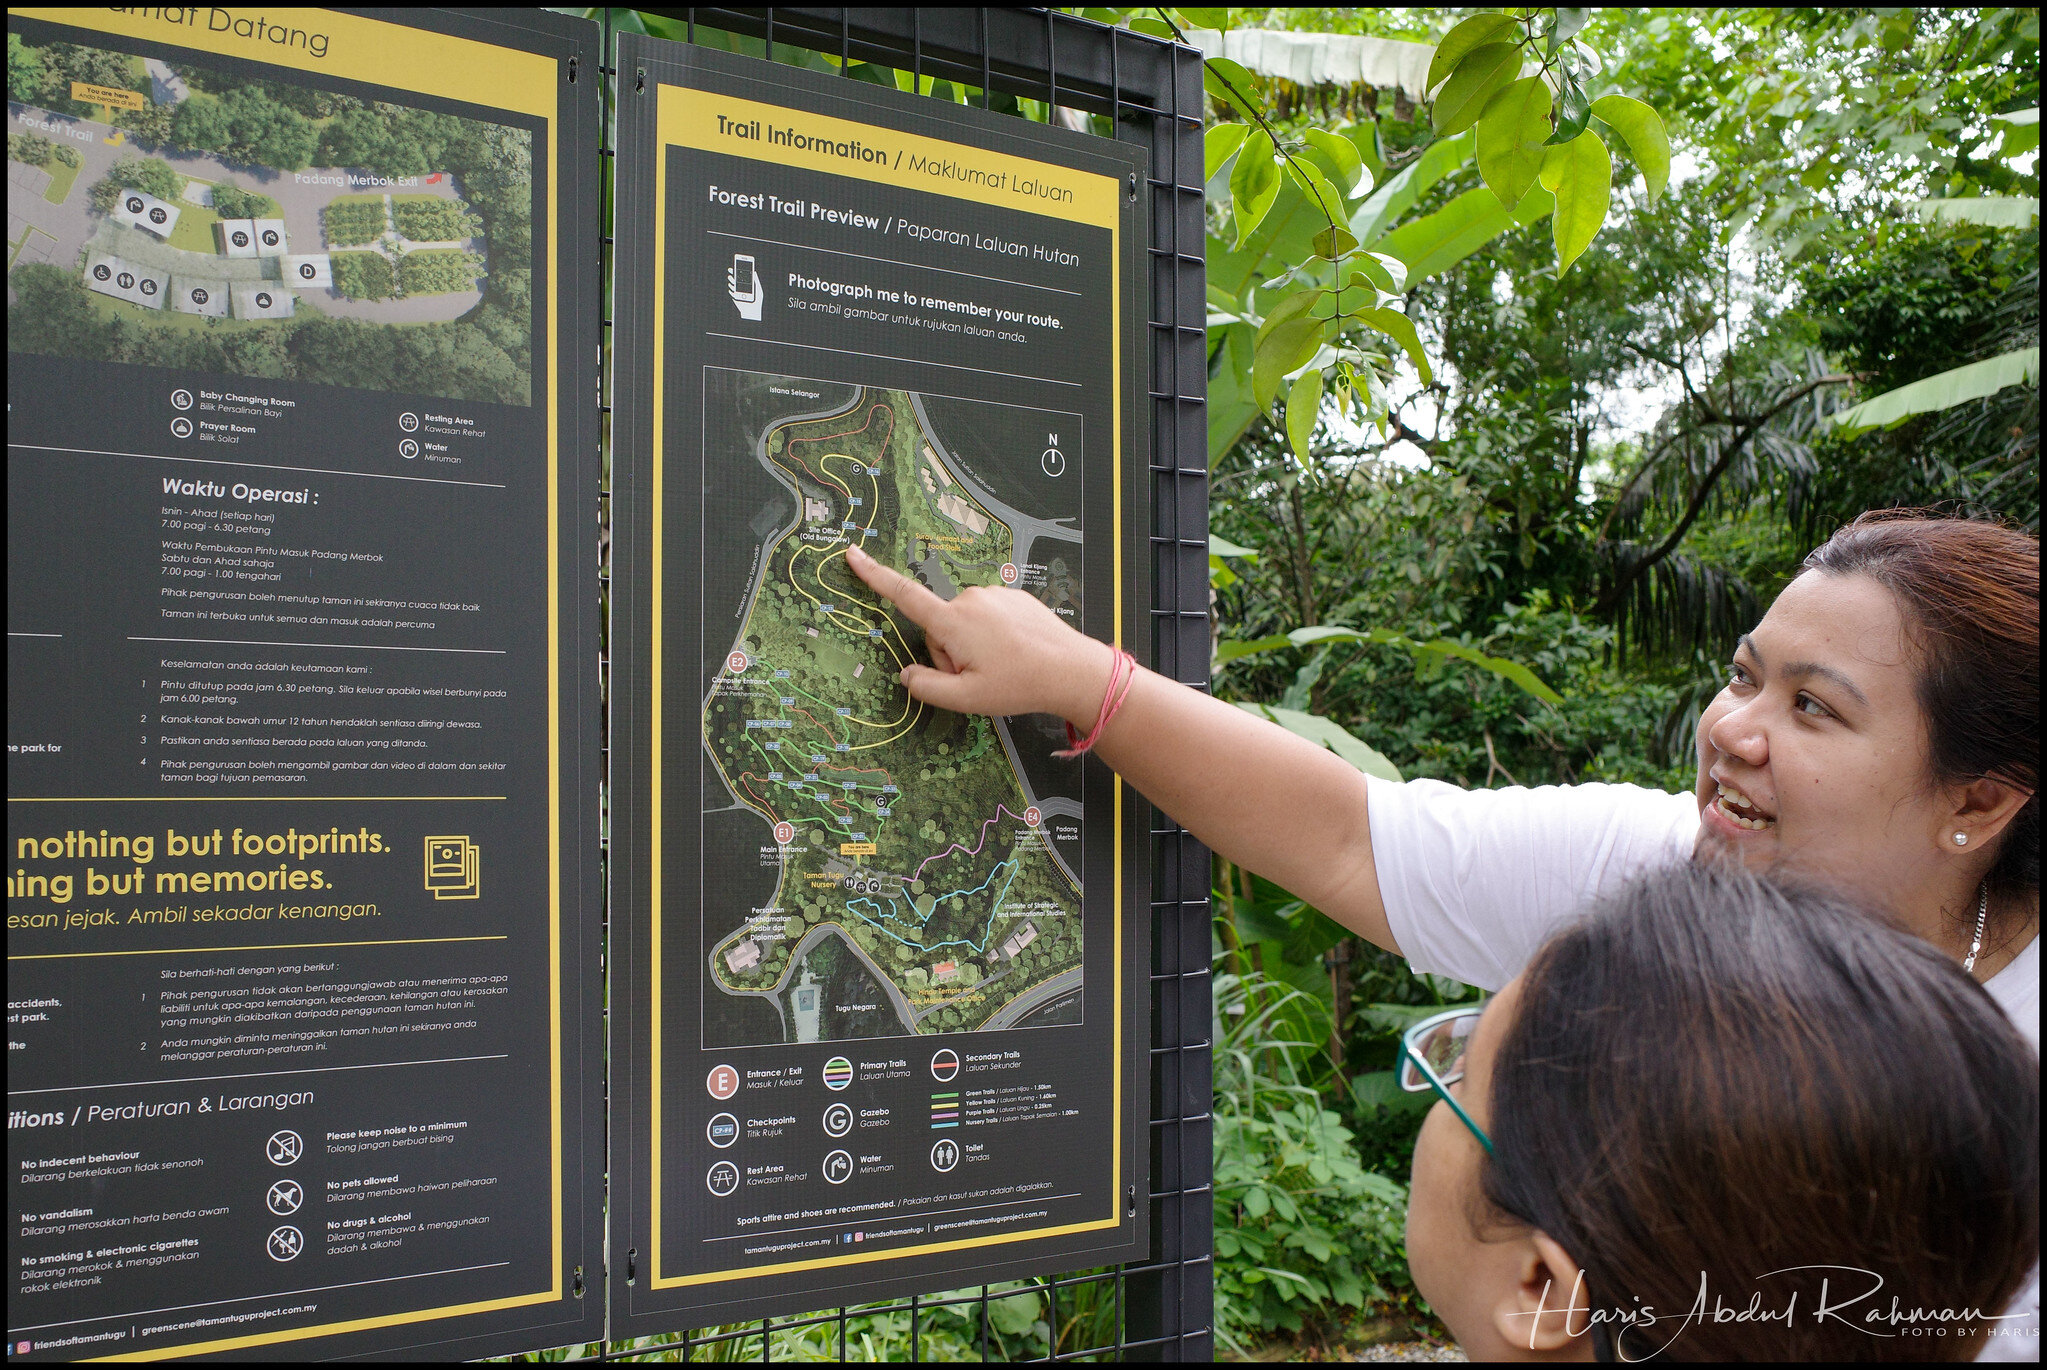 A volunteer showing us the route